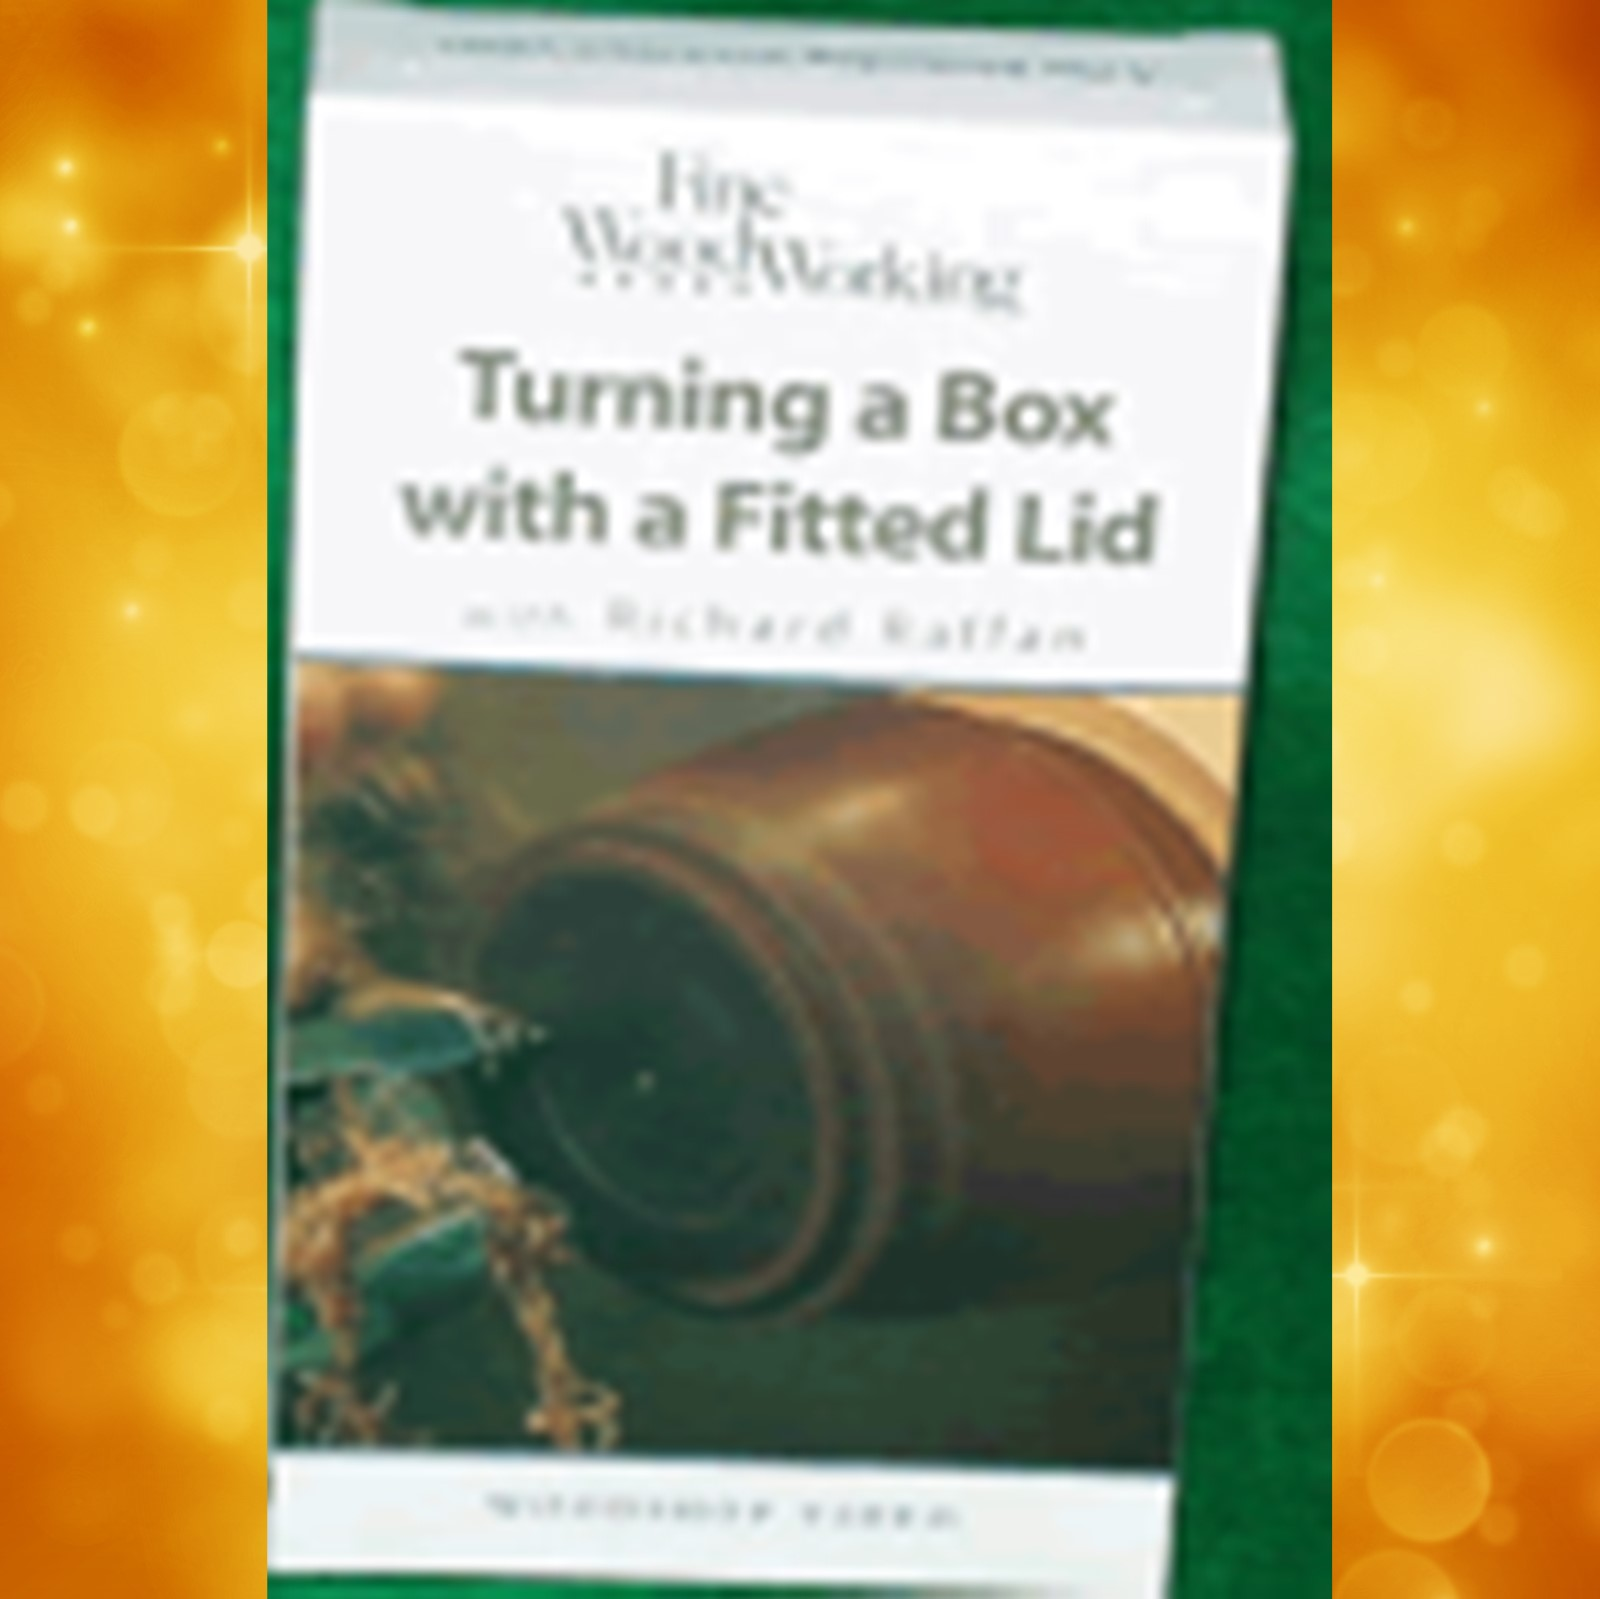 Turning a Box with a Fitted Lid with Richard Raffan (VHS)  014017